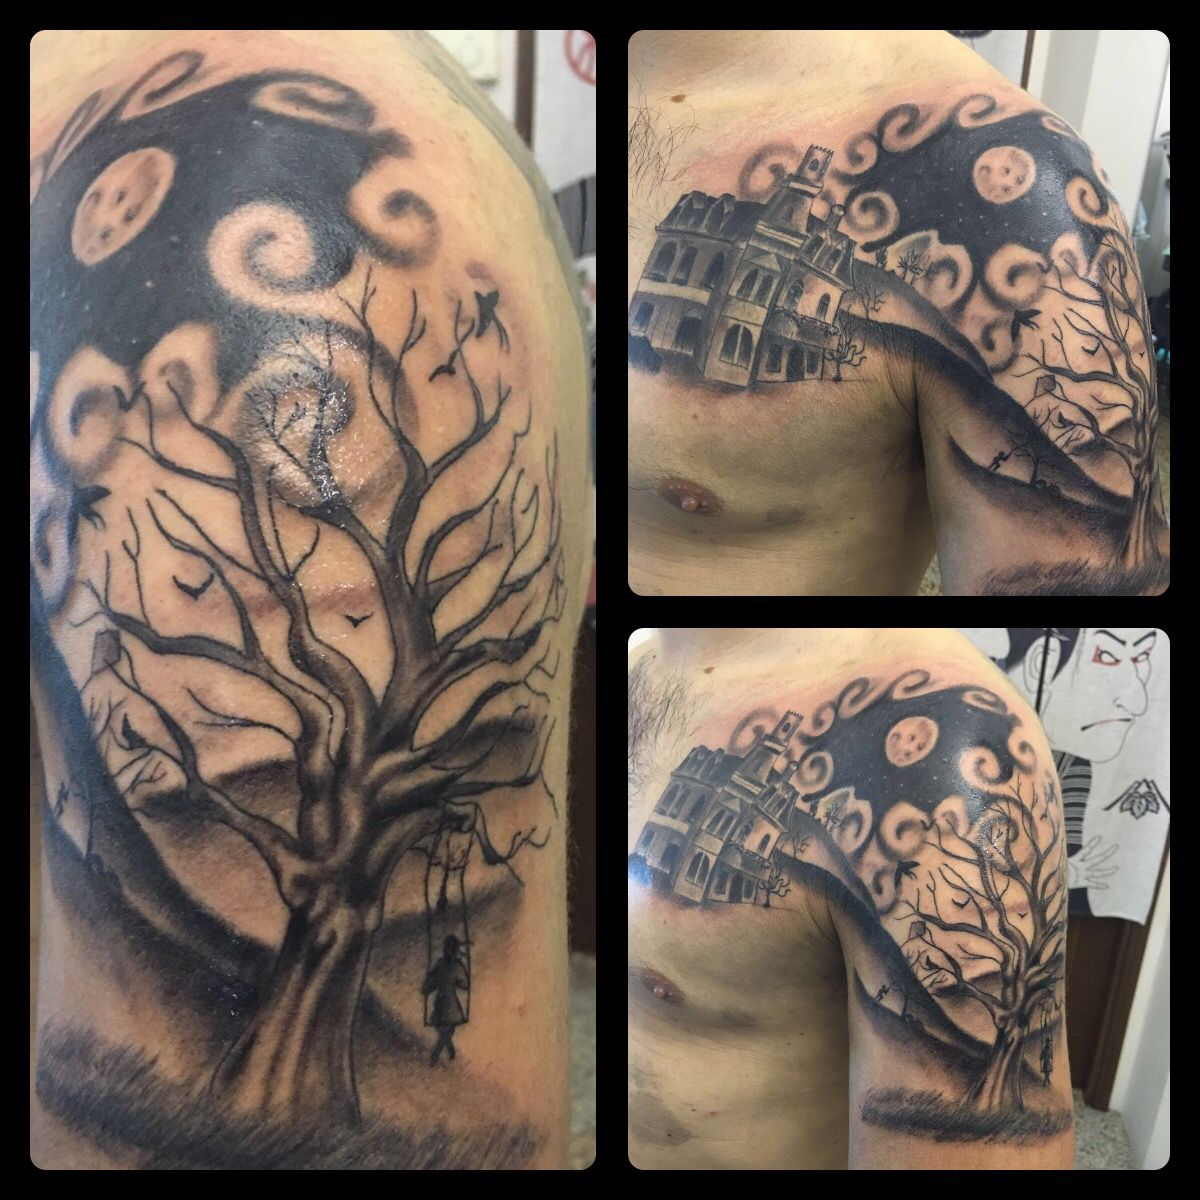 PMP Tattoo Parlour  by Albi   #darkness #tattoo #tattoos #tattooed #ink #inked #inktattoo #flower #black #tattooedgirls #dark #blackwhite #now #love #me #mix #flowersink #girl #amezing #special #instacool  #instagood #inked #love #picoftheday #tree @albi_koruti @pmp_tattoo_parlour